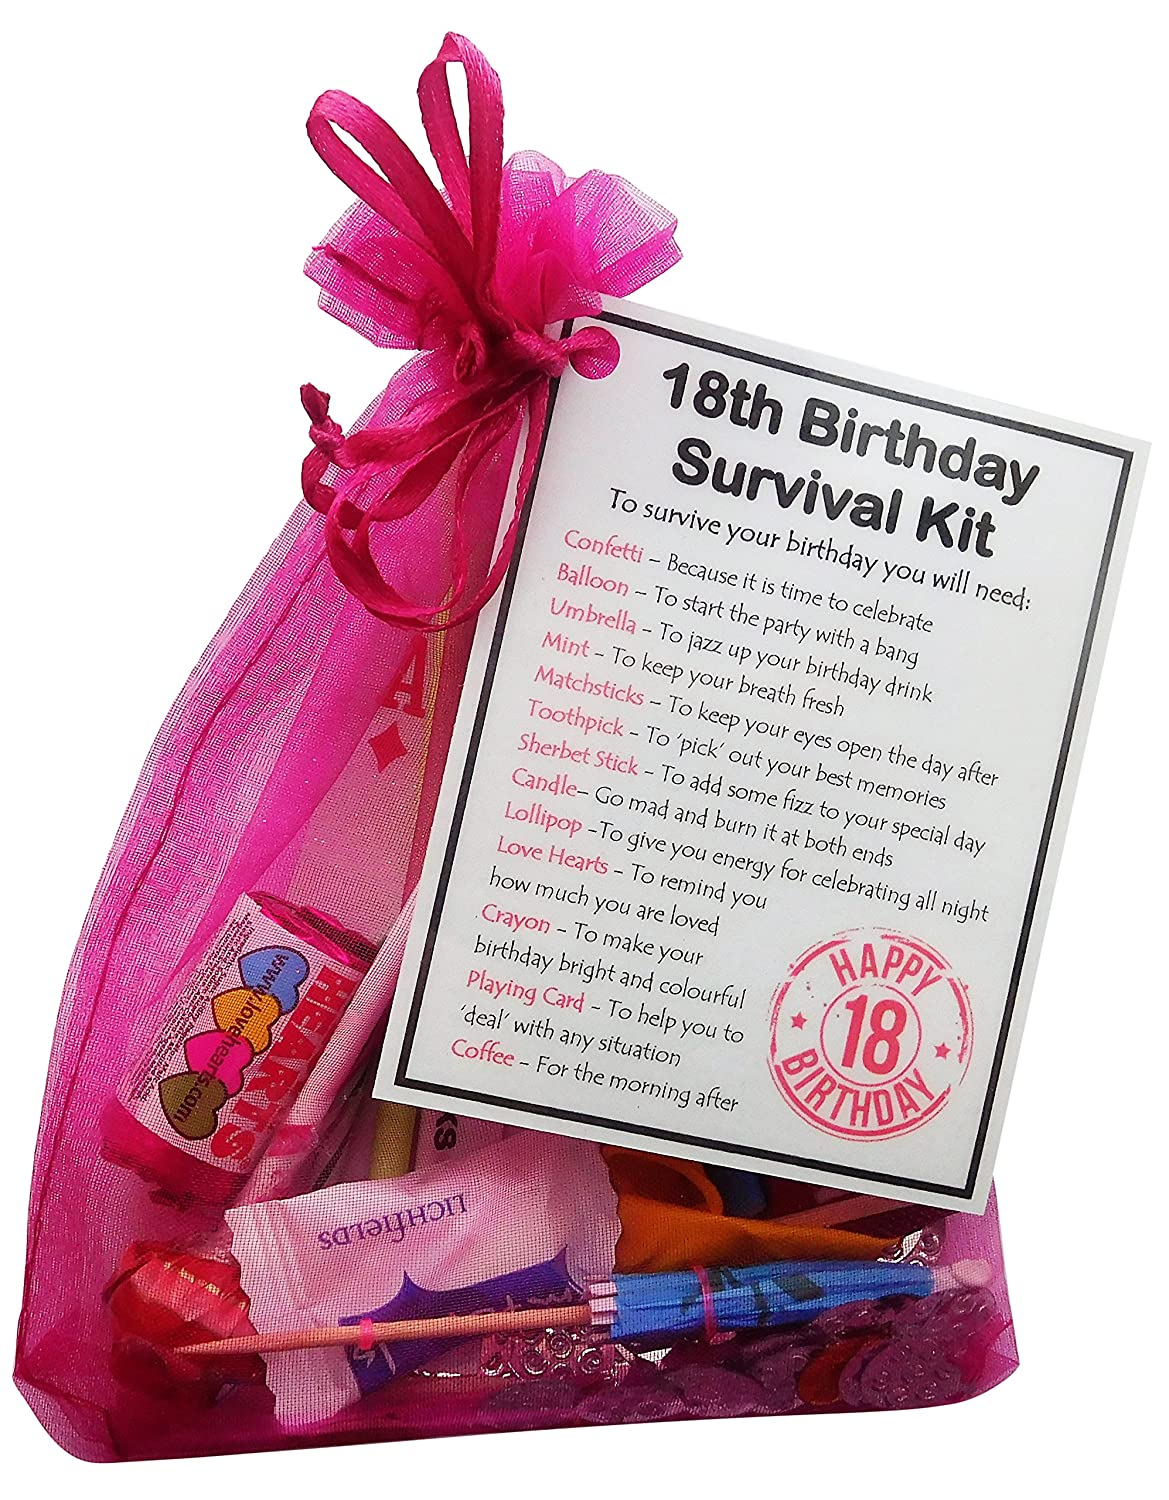 SMILE GIFTS UK 18th Birthday Gift- Unique Survival Kit (Hot Pink) - 18th birthday gift 18th birthday present 18th gift 18th present 18th birthday ...  sc 1 st  Amazon UK : 18th birthday gifts for her - medton.org